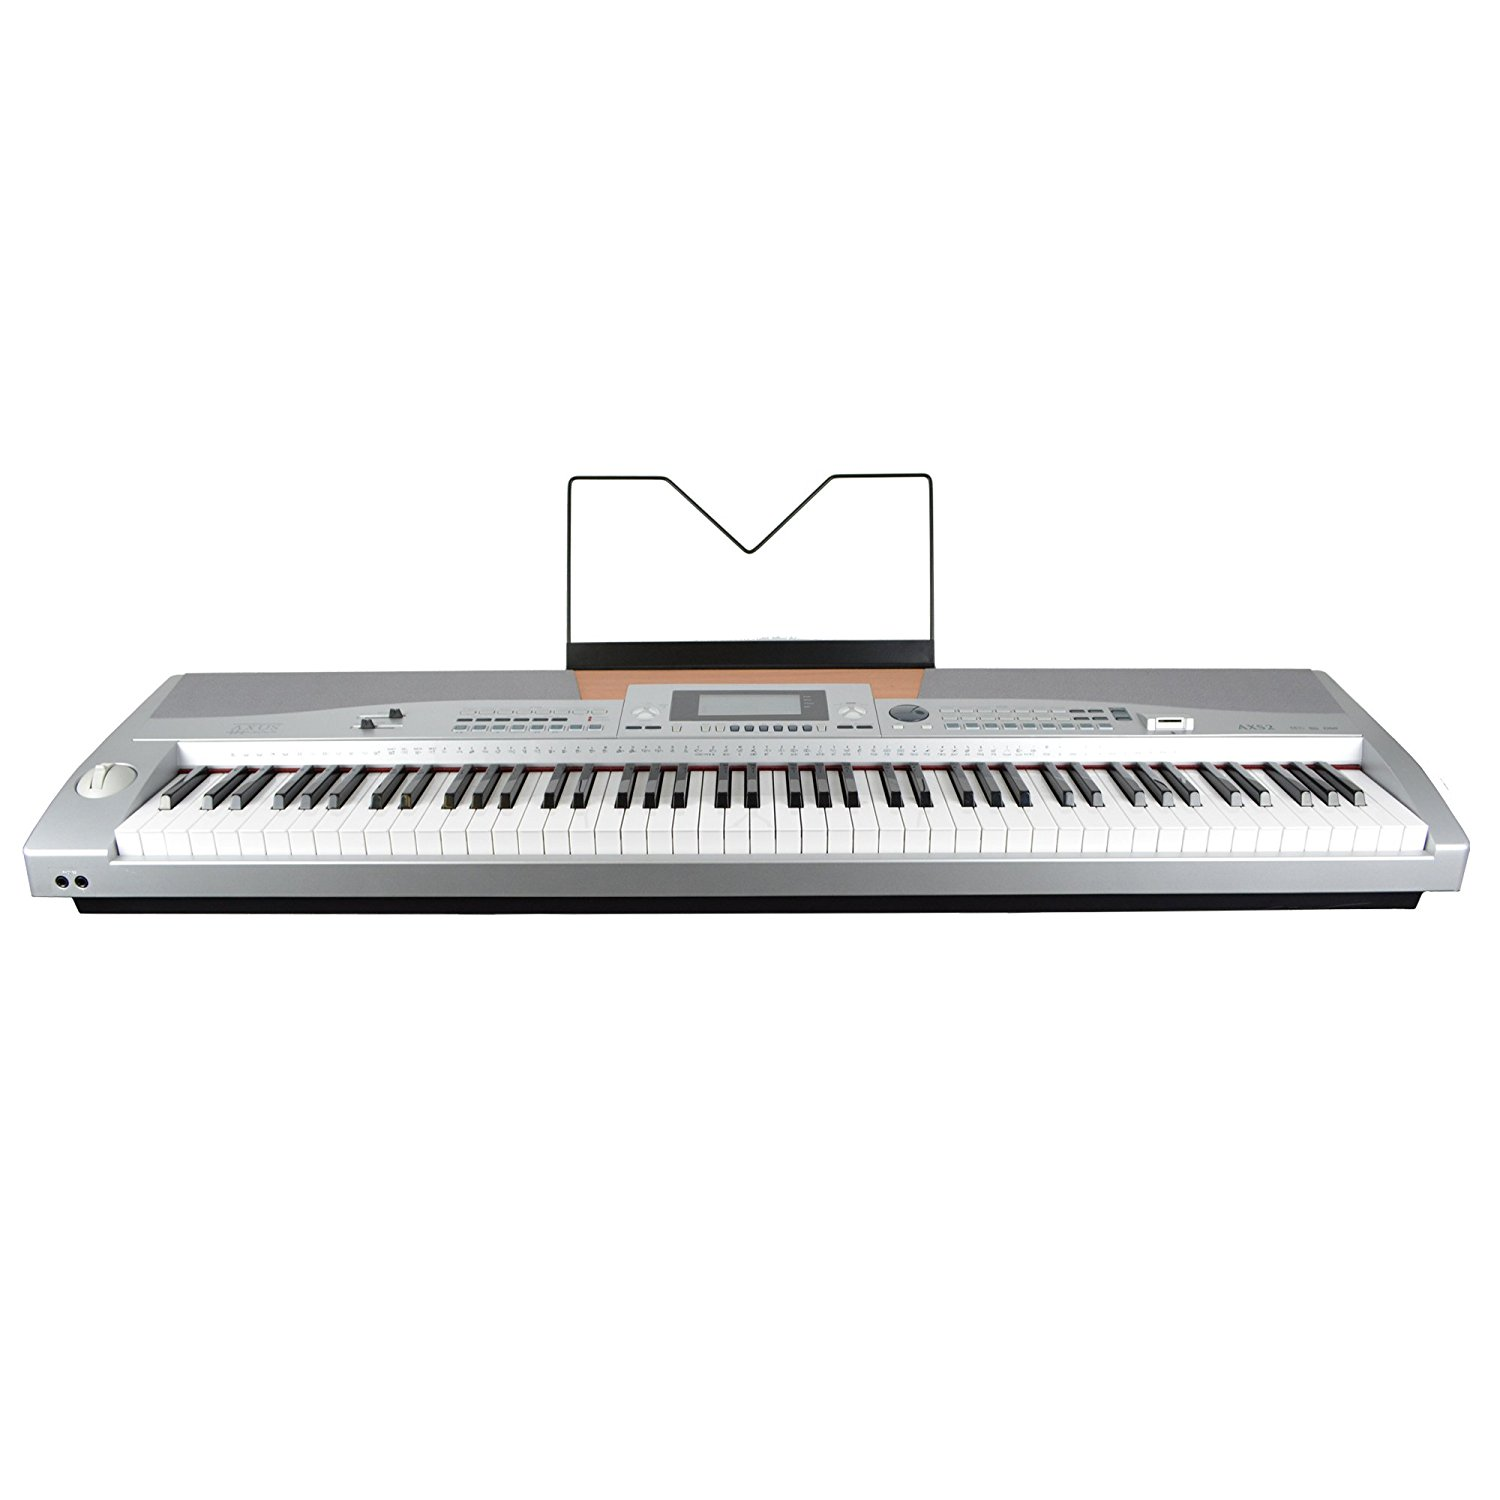 Axus Digital AXS2 Digital Piano Review